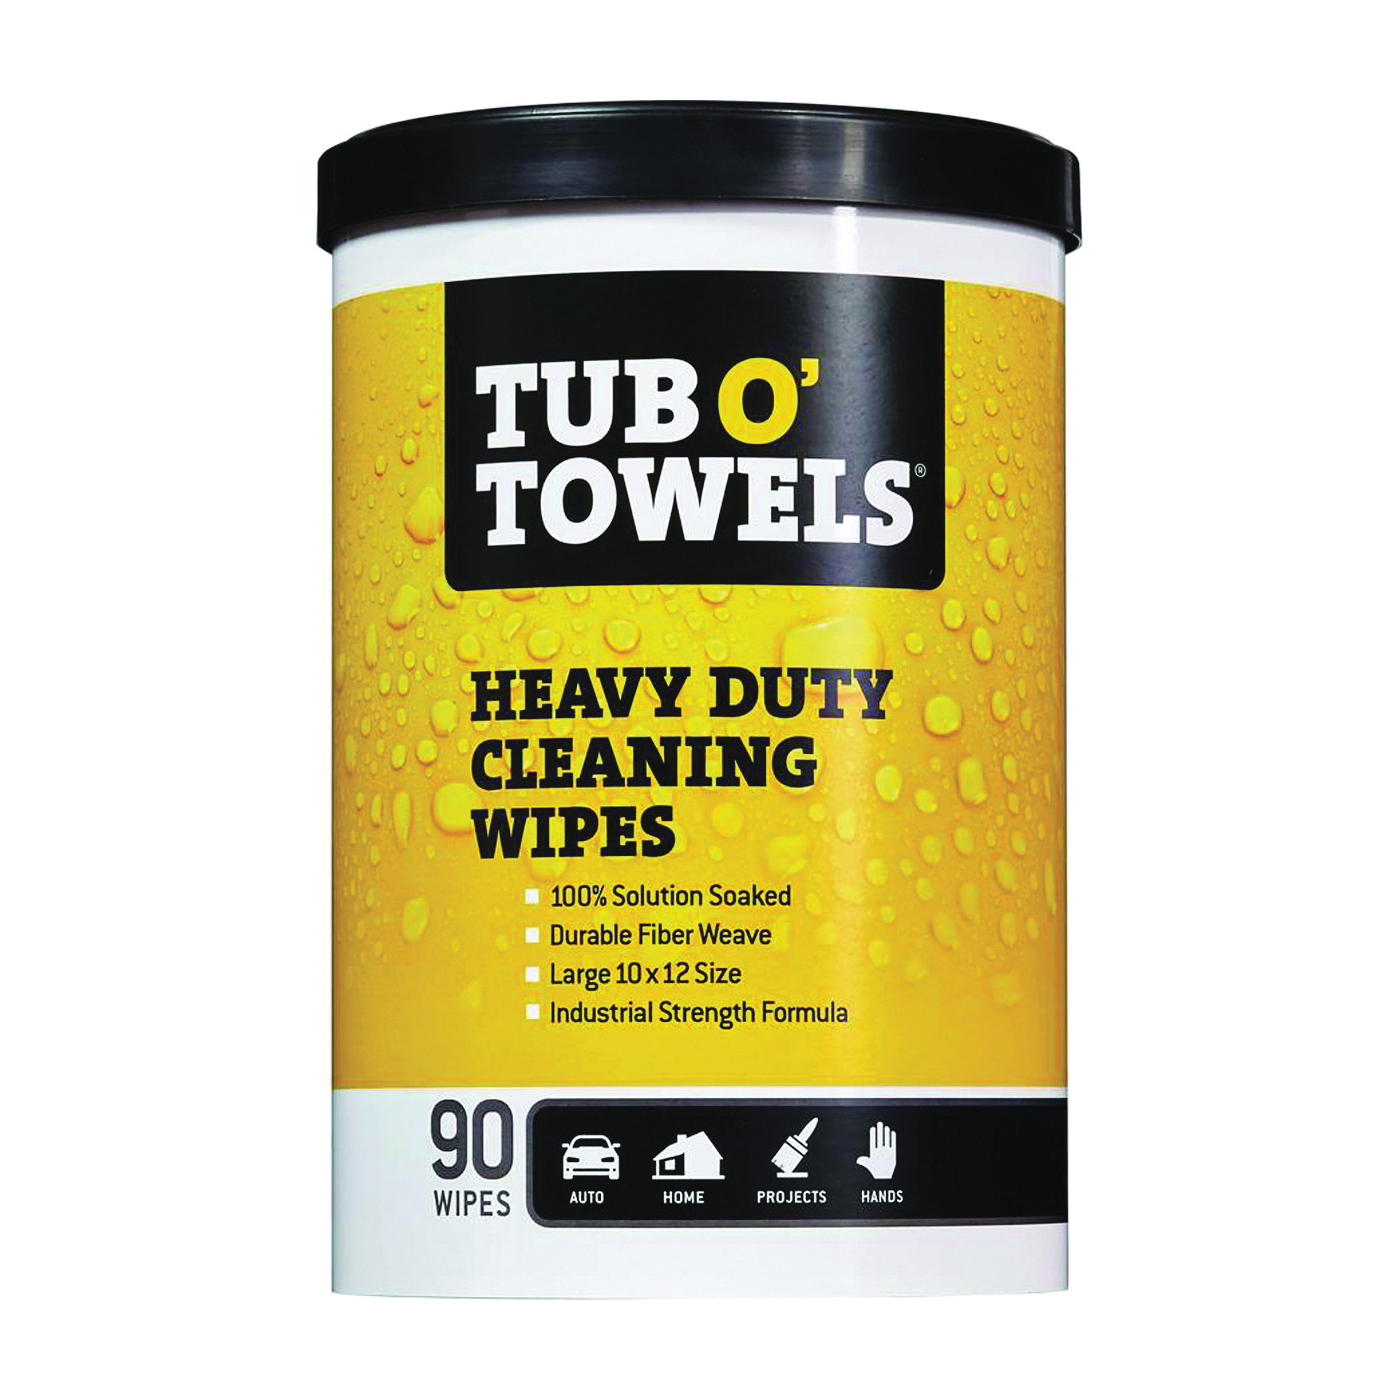 Tub O'Towels TW90